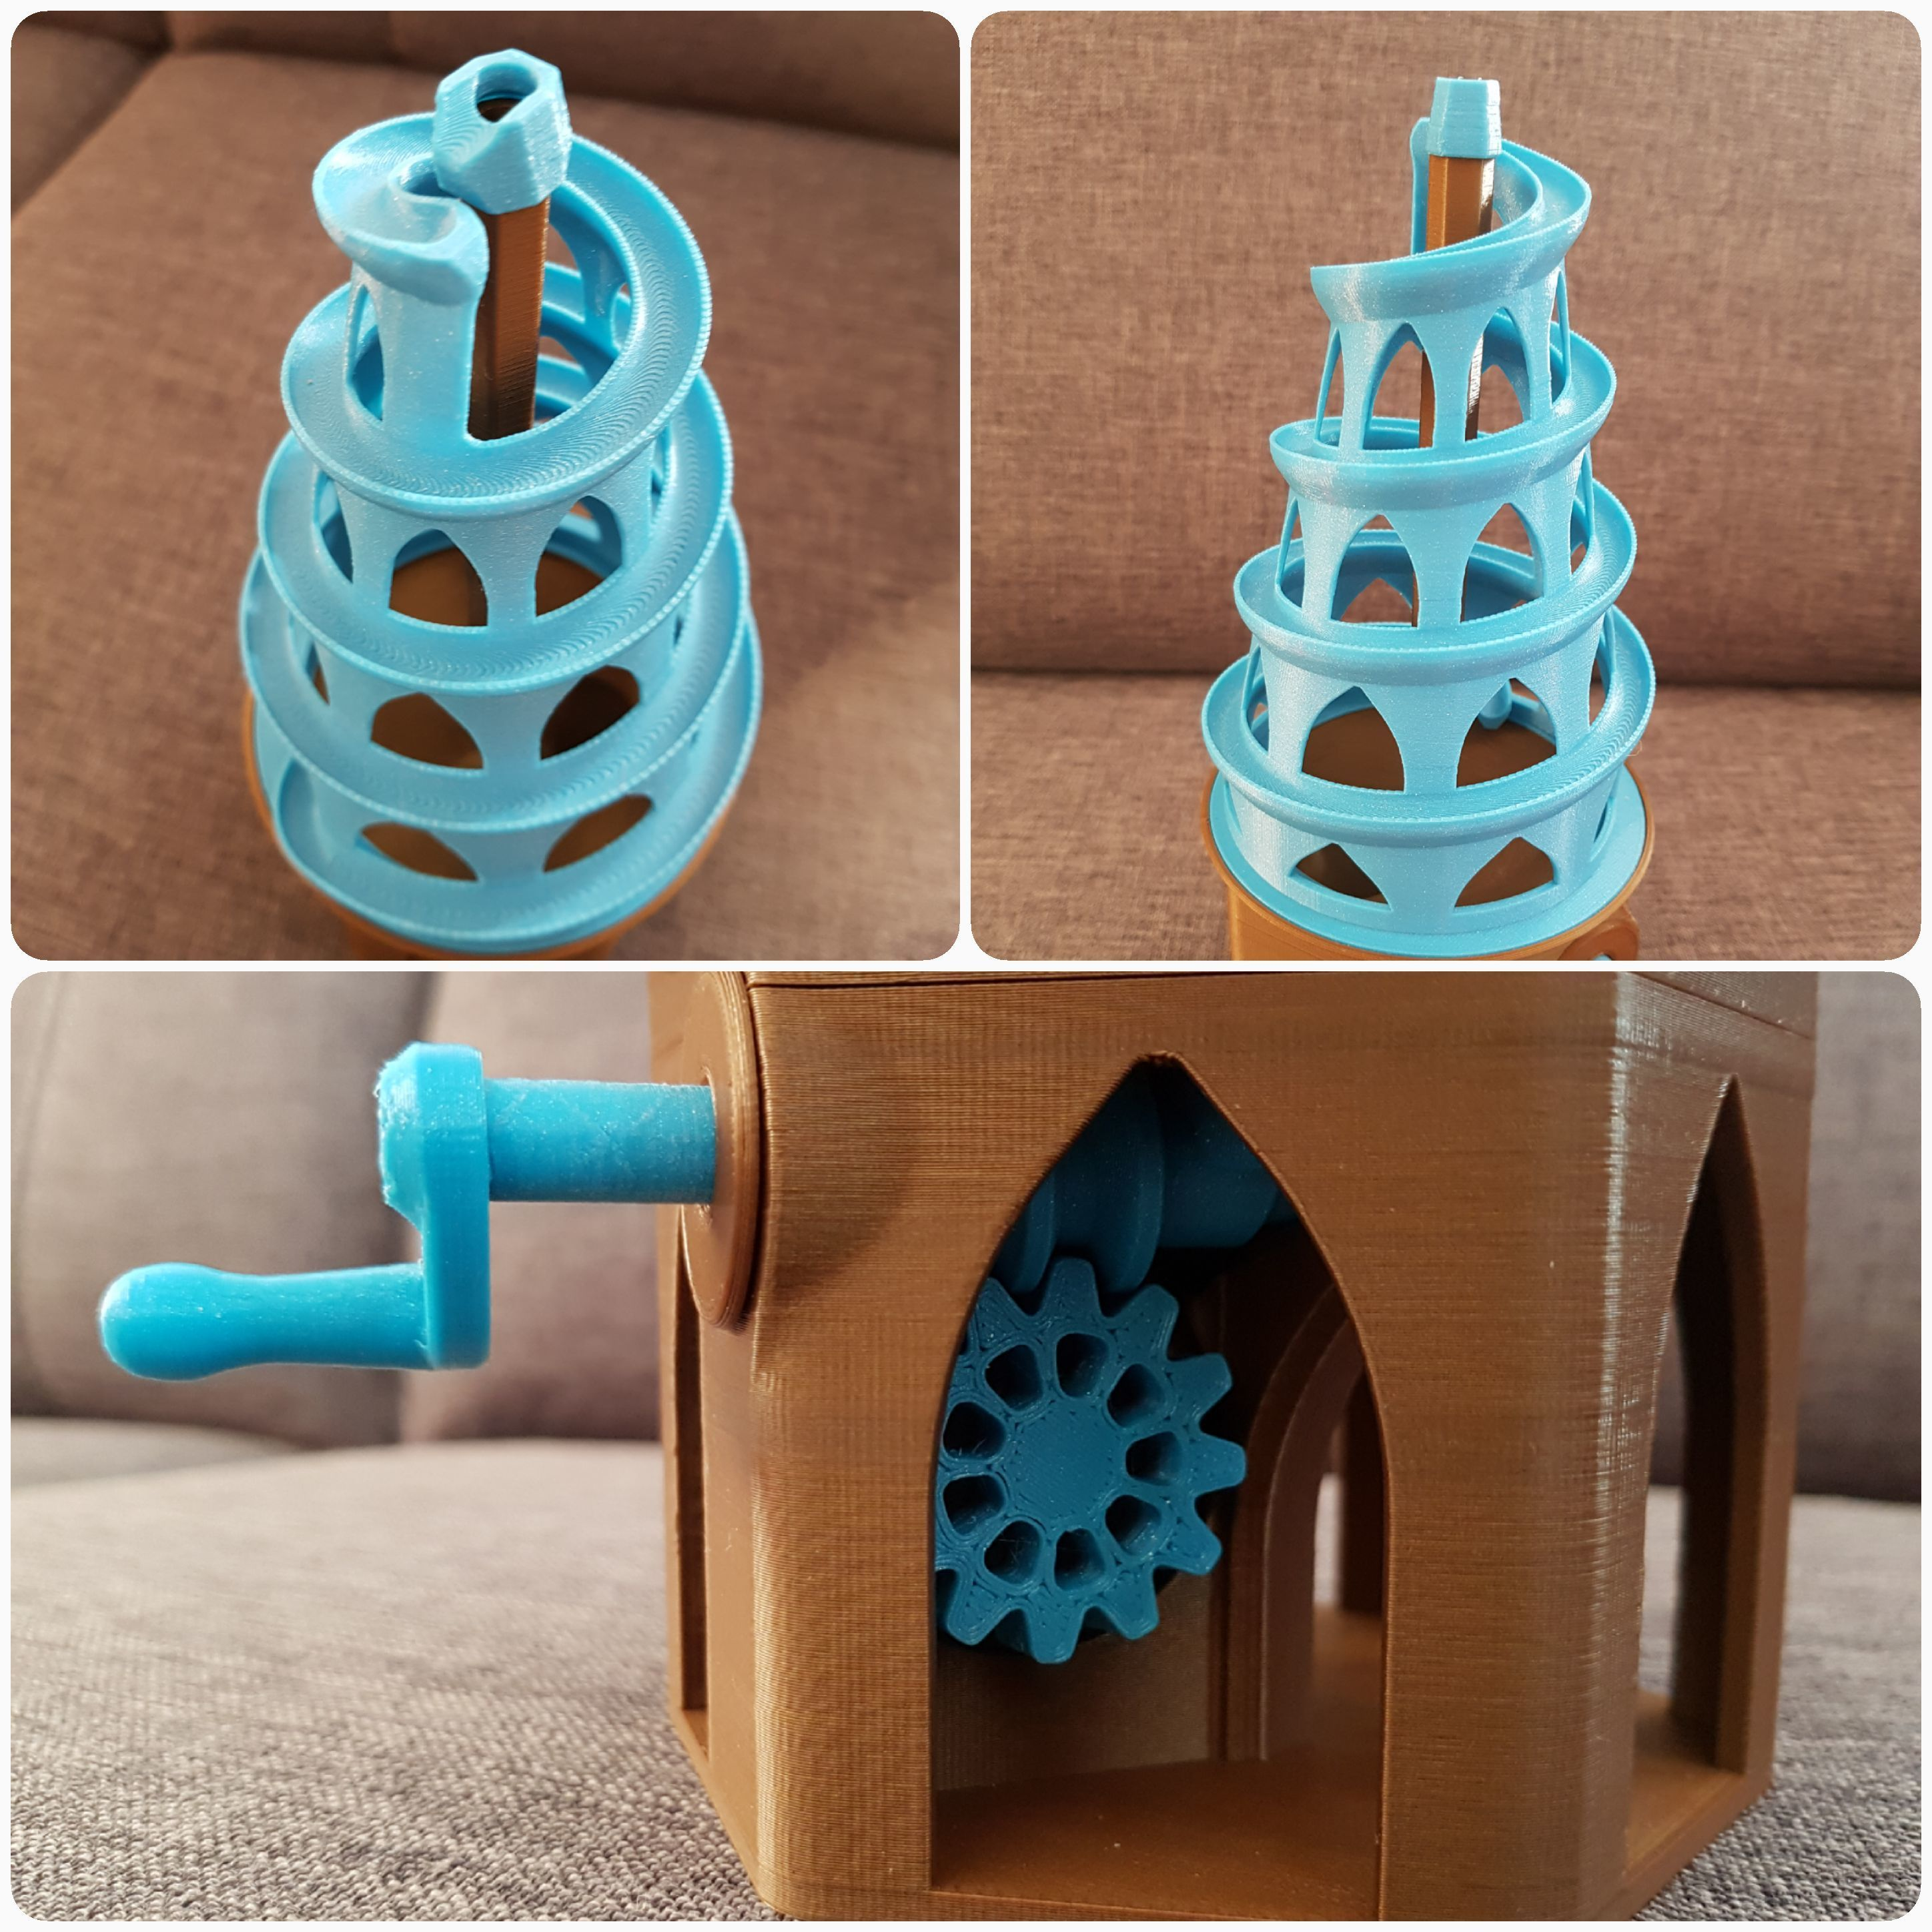 20180326_203627.jpg Download free STL file 6mm Marble Machine • Model to 3D print, 87squirrels